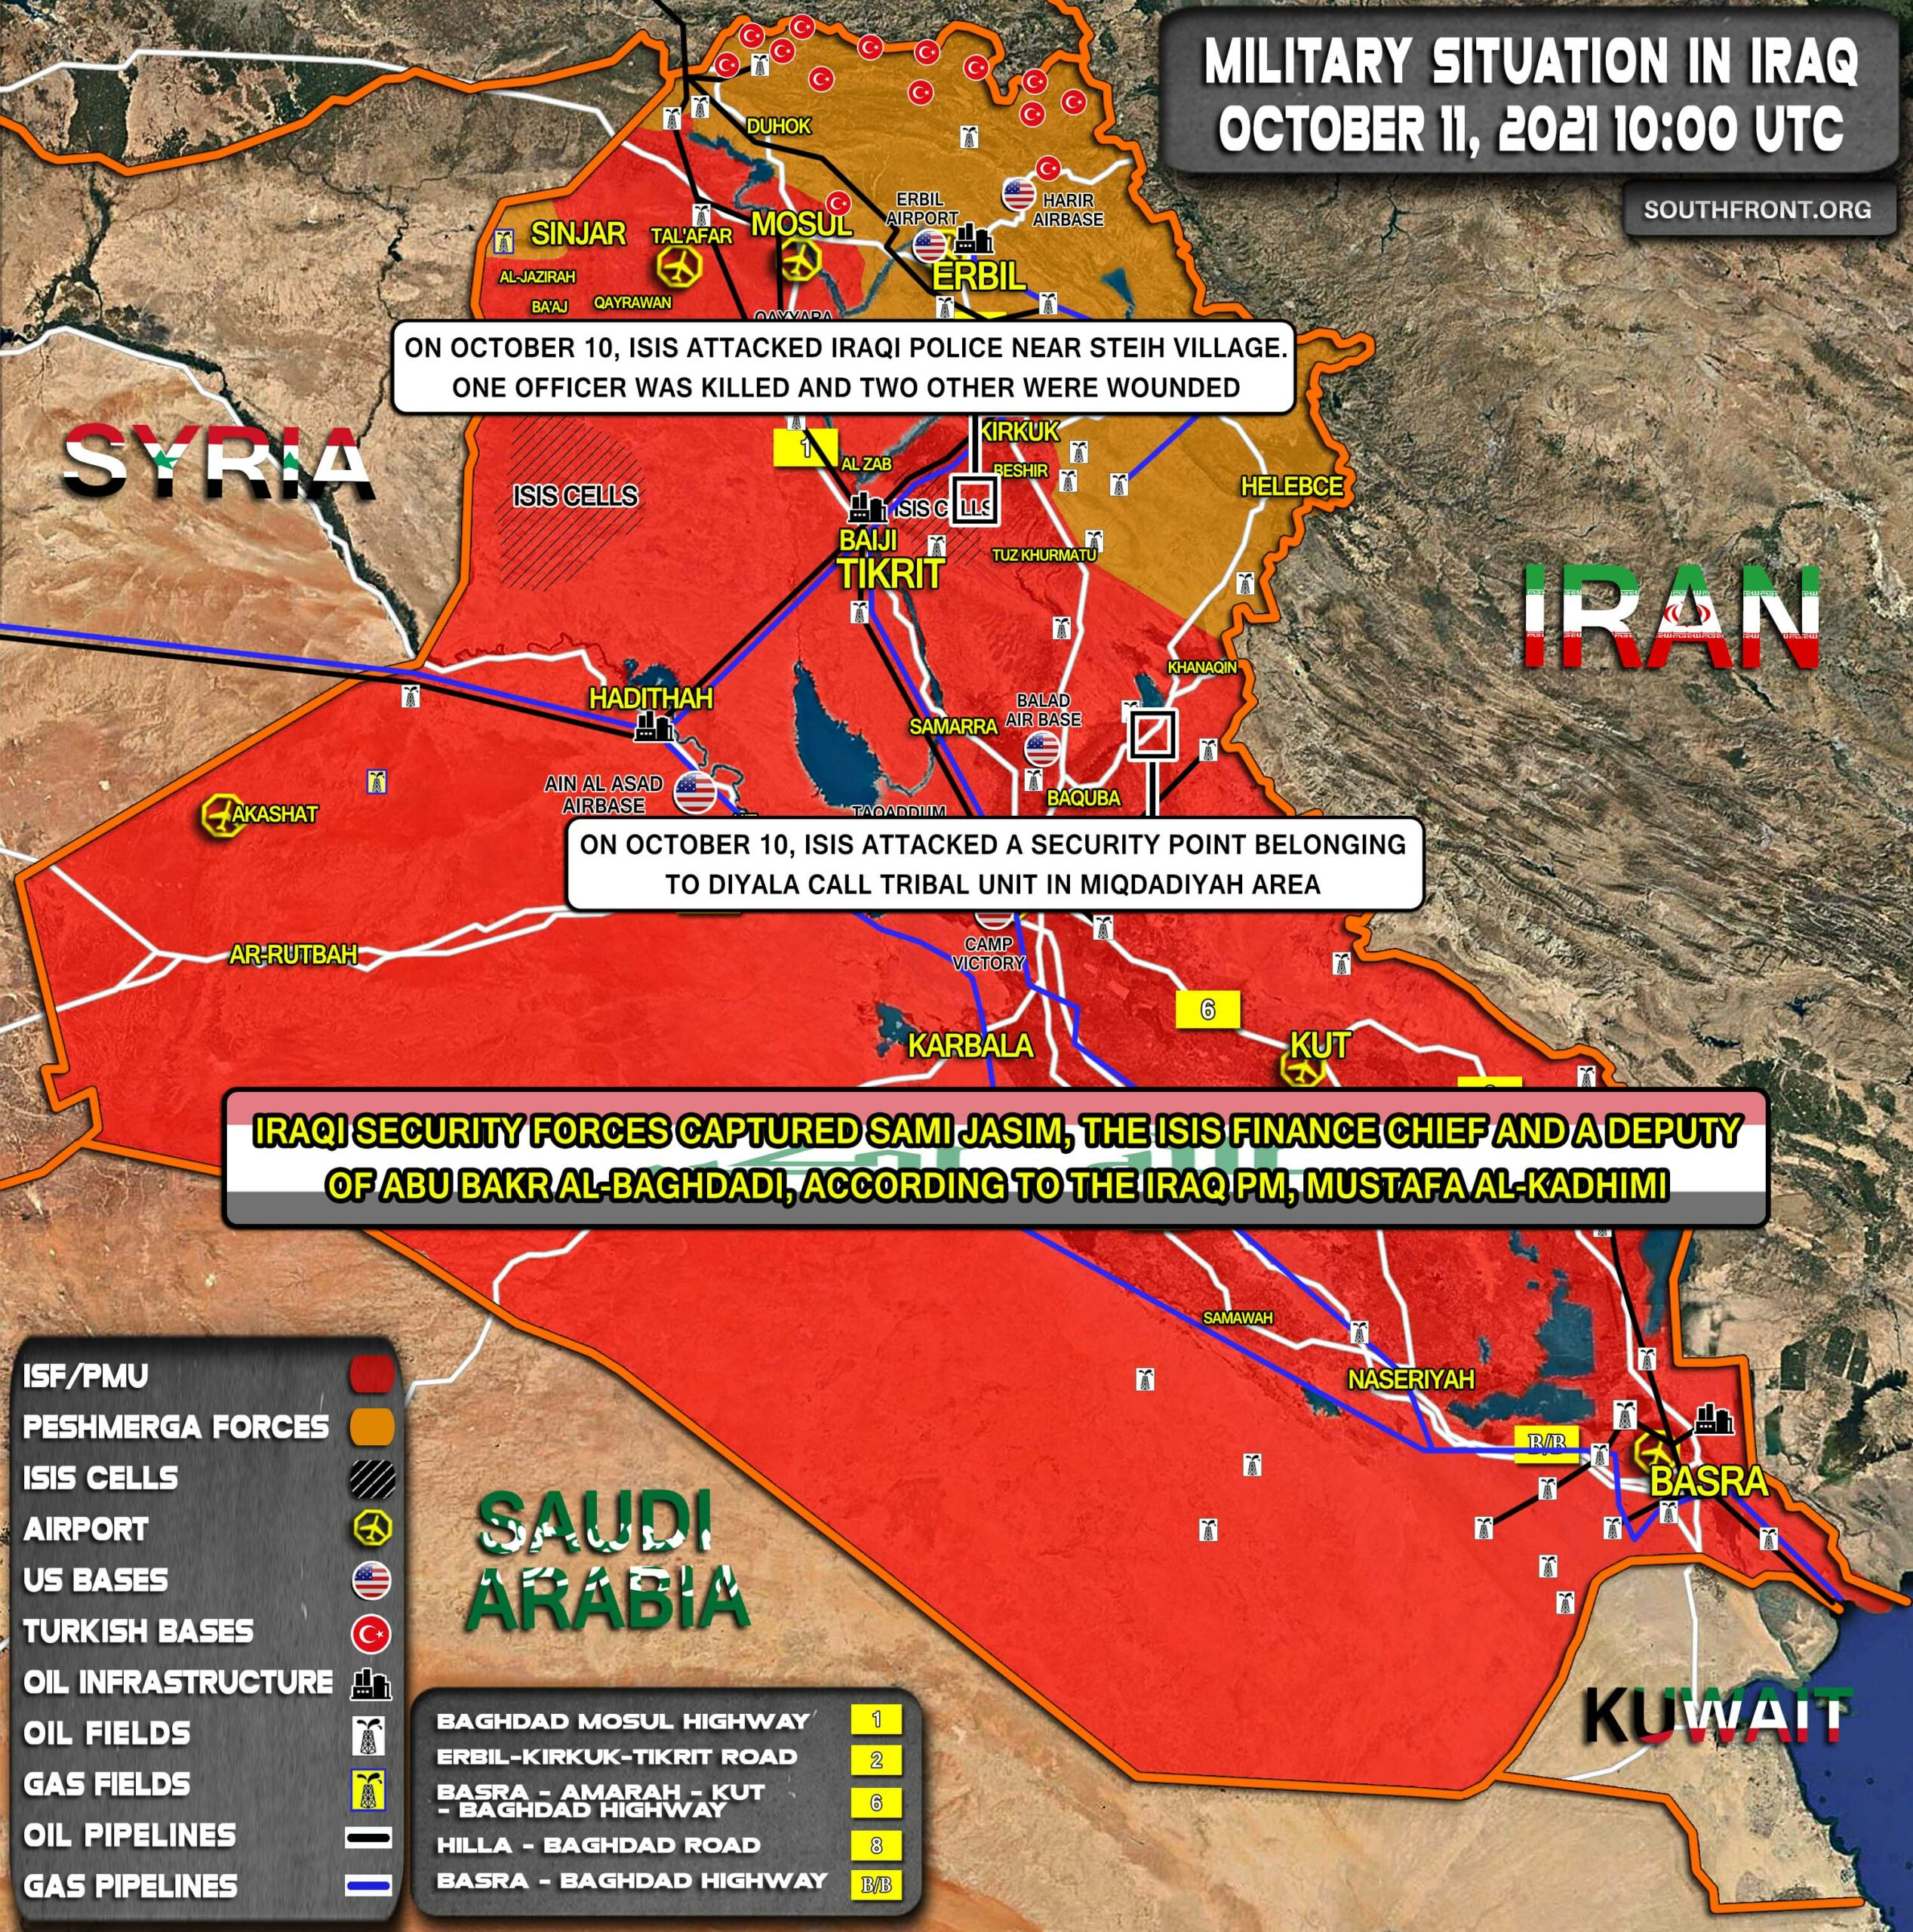 Military Situation In Iraq On October 11, 2021 (Map Update)